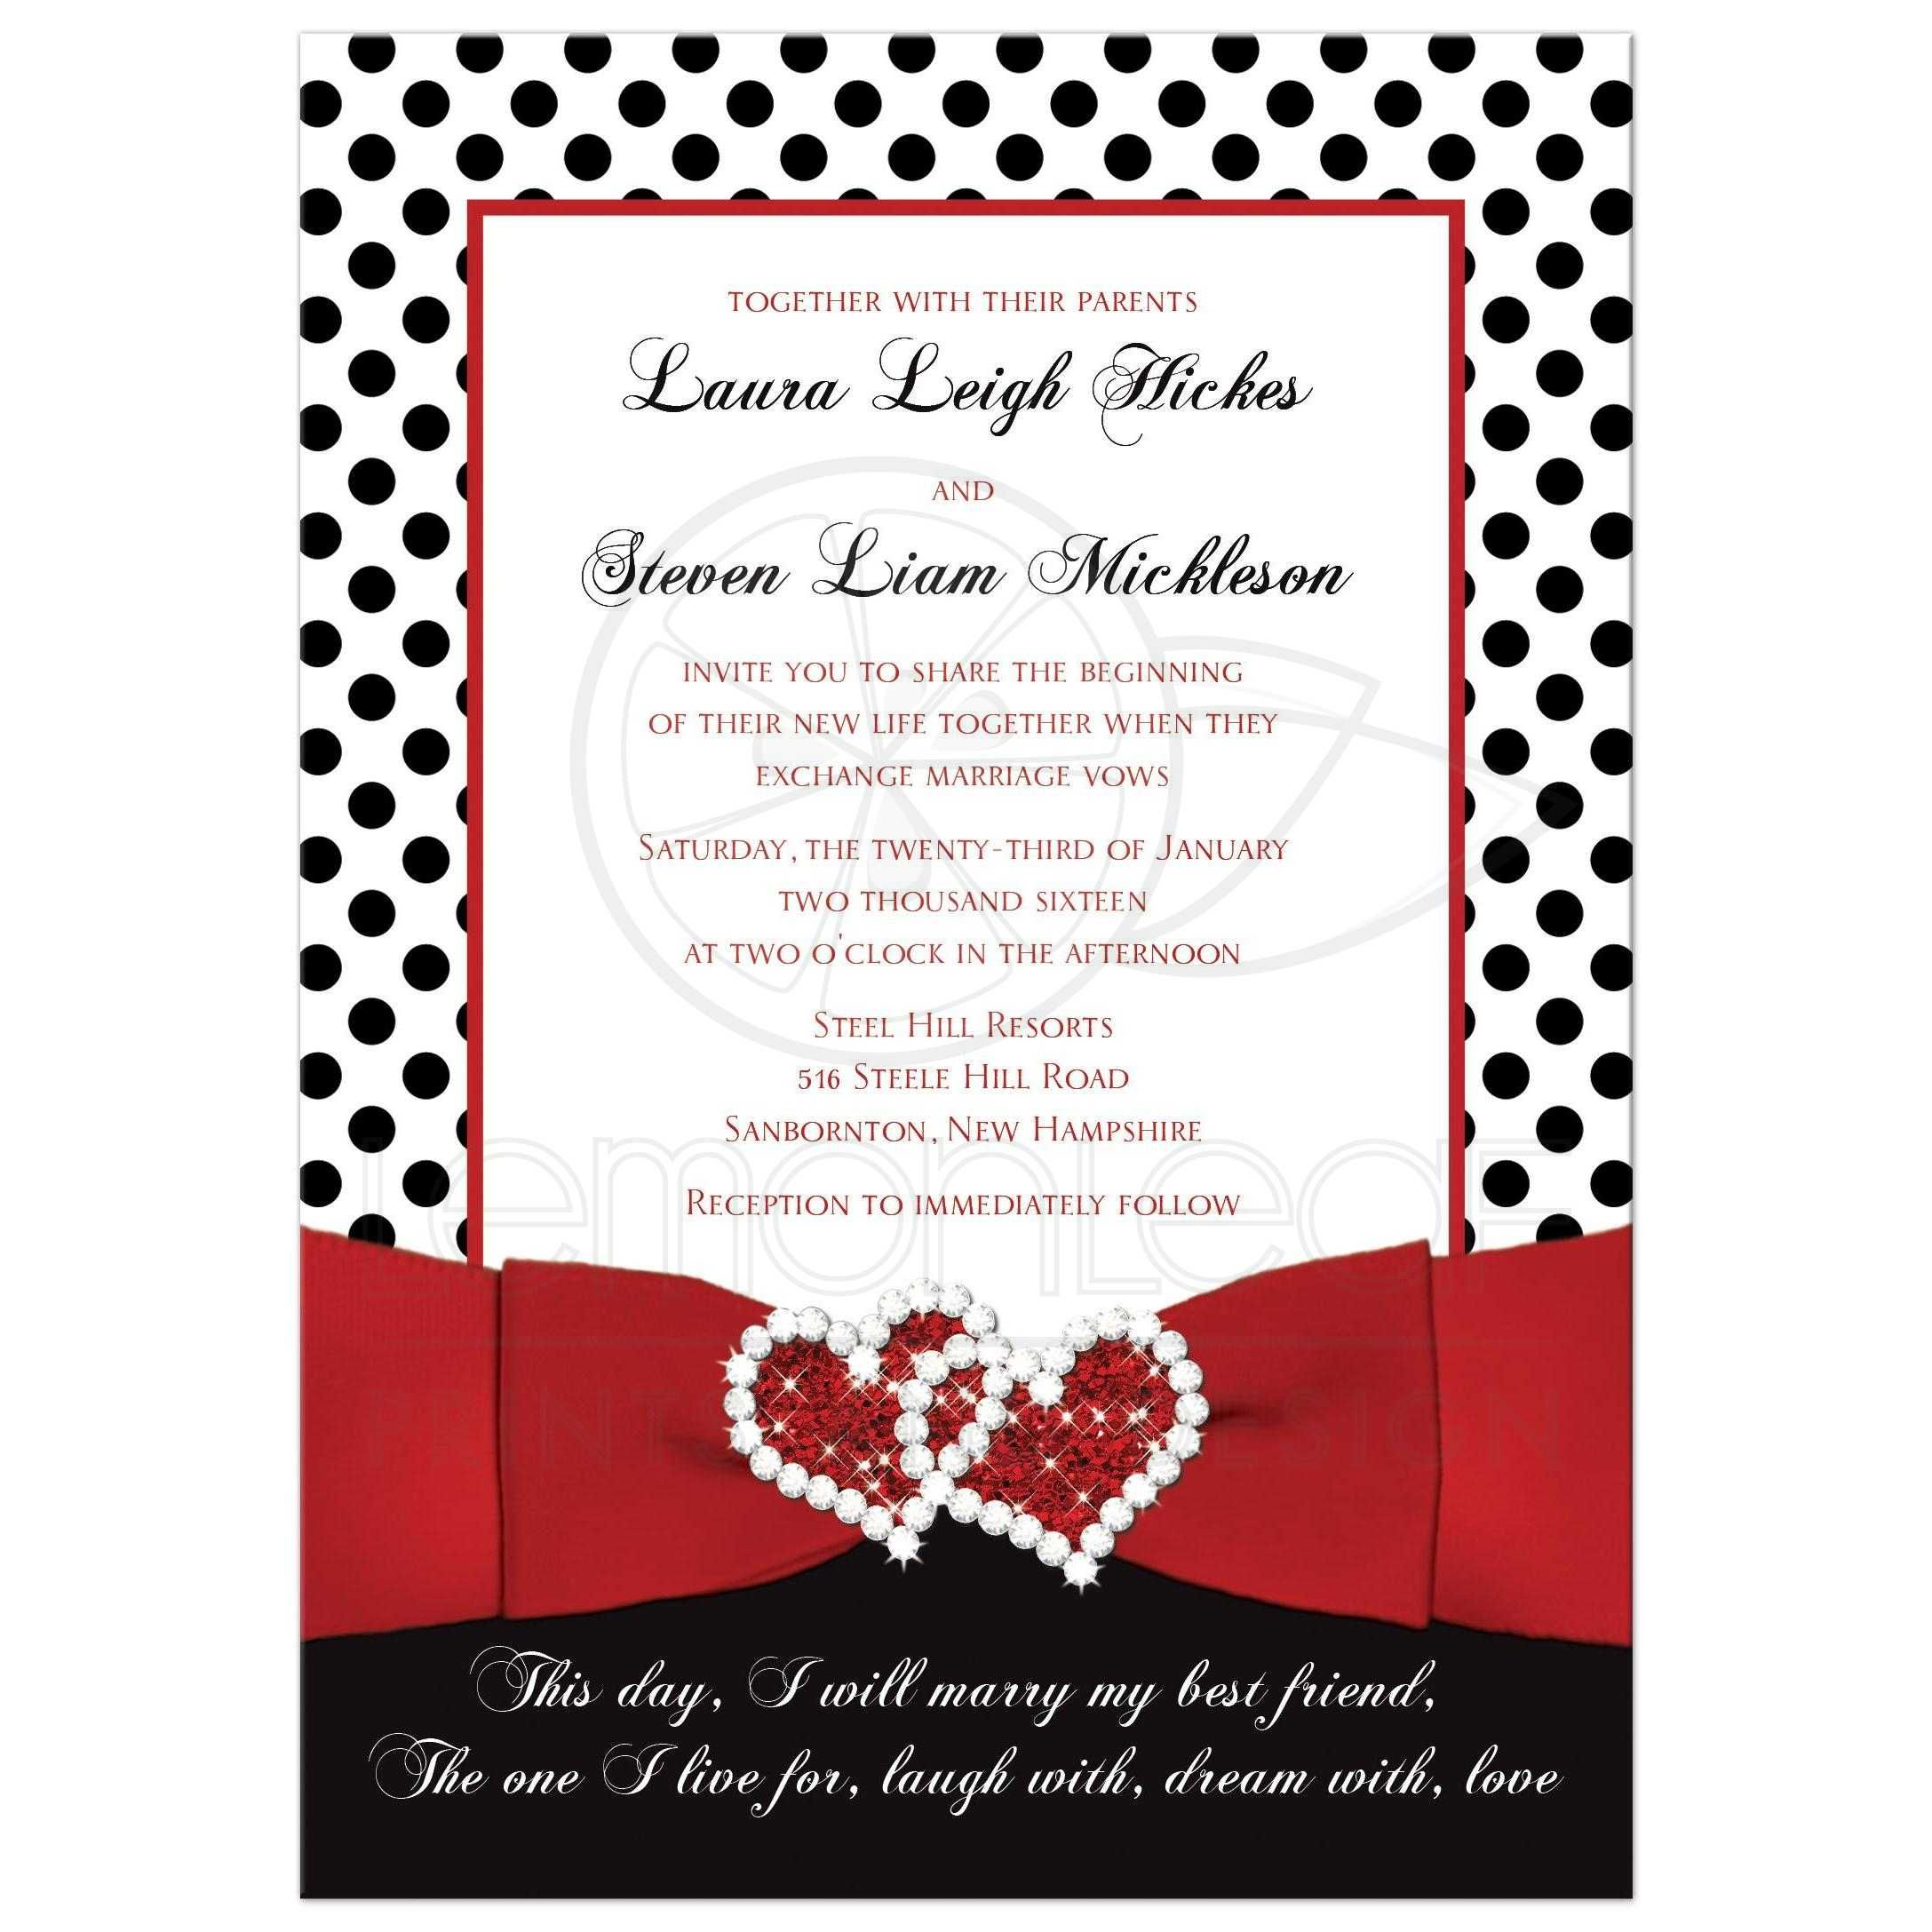 Wedding Invitation | Black, White Red | Polka Dots | Printed Ribbon ...